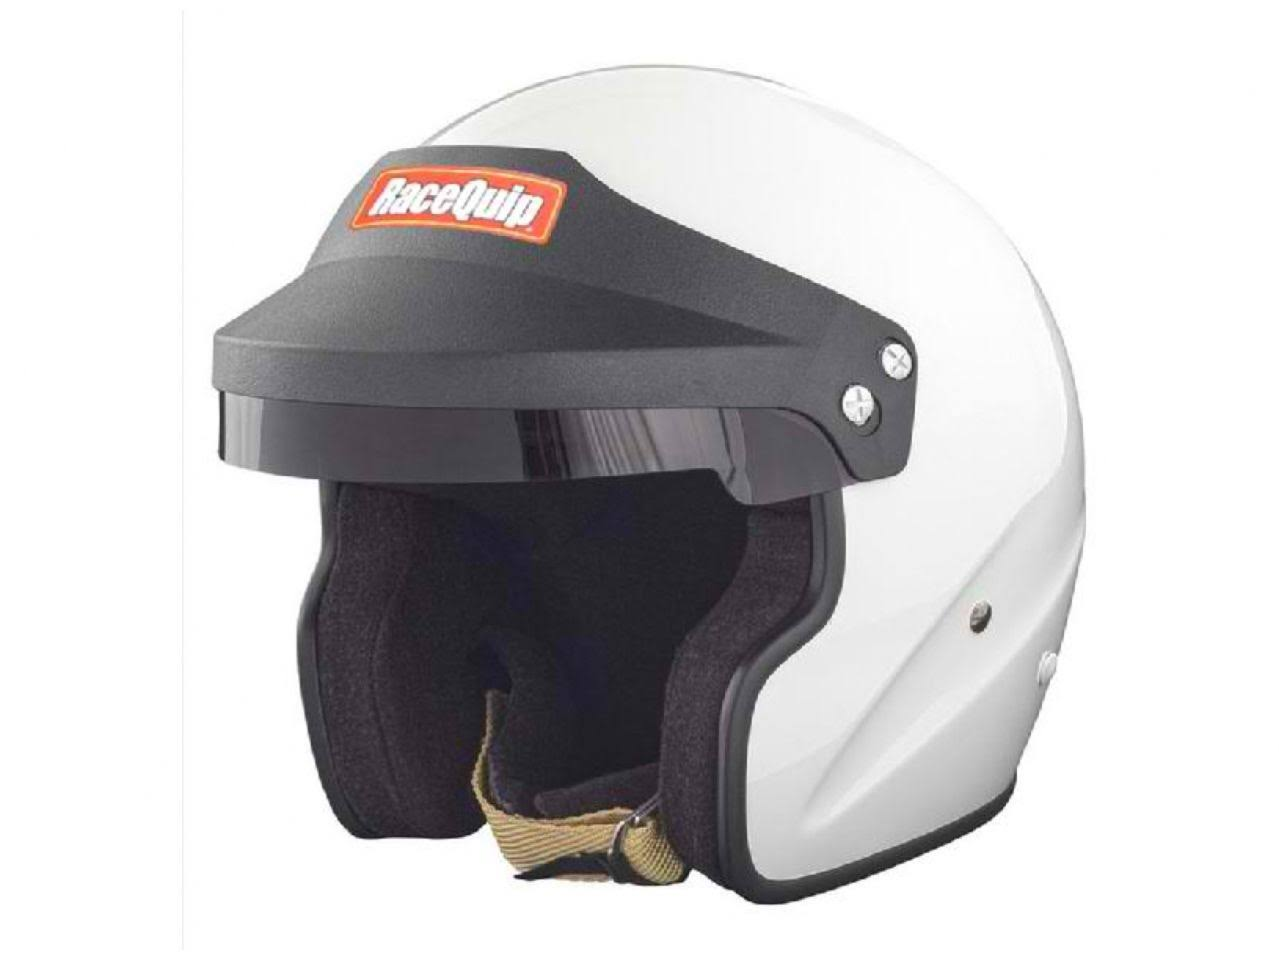 Racequip OF15 Open Face Helmet (White, Large)